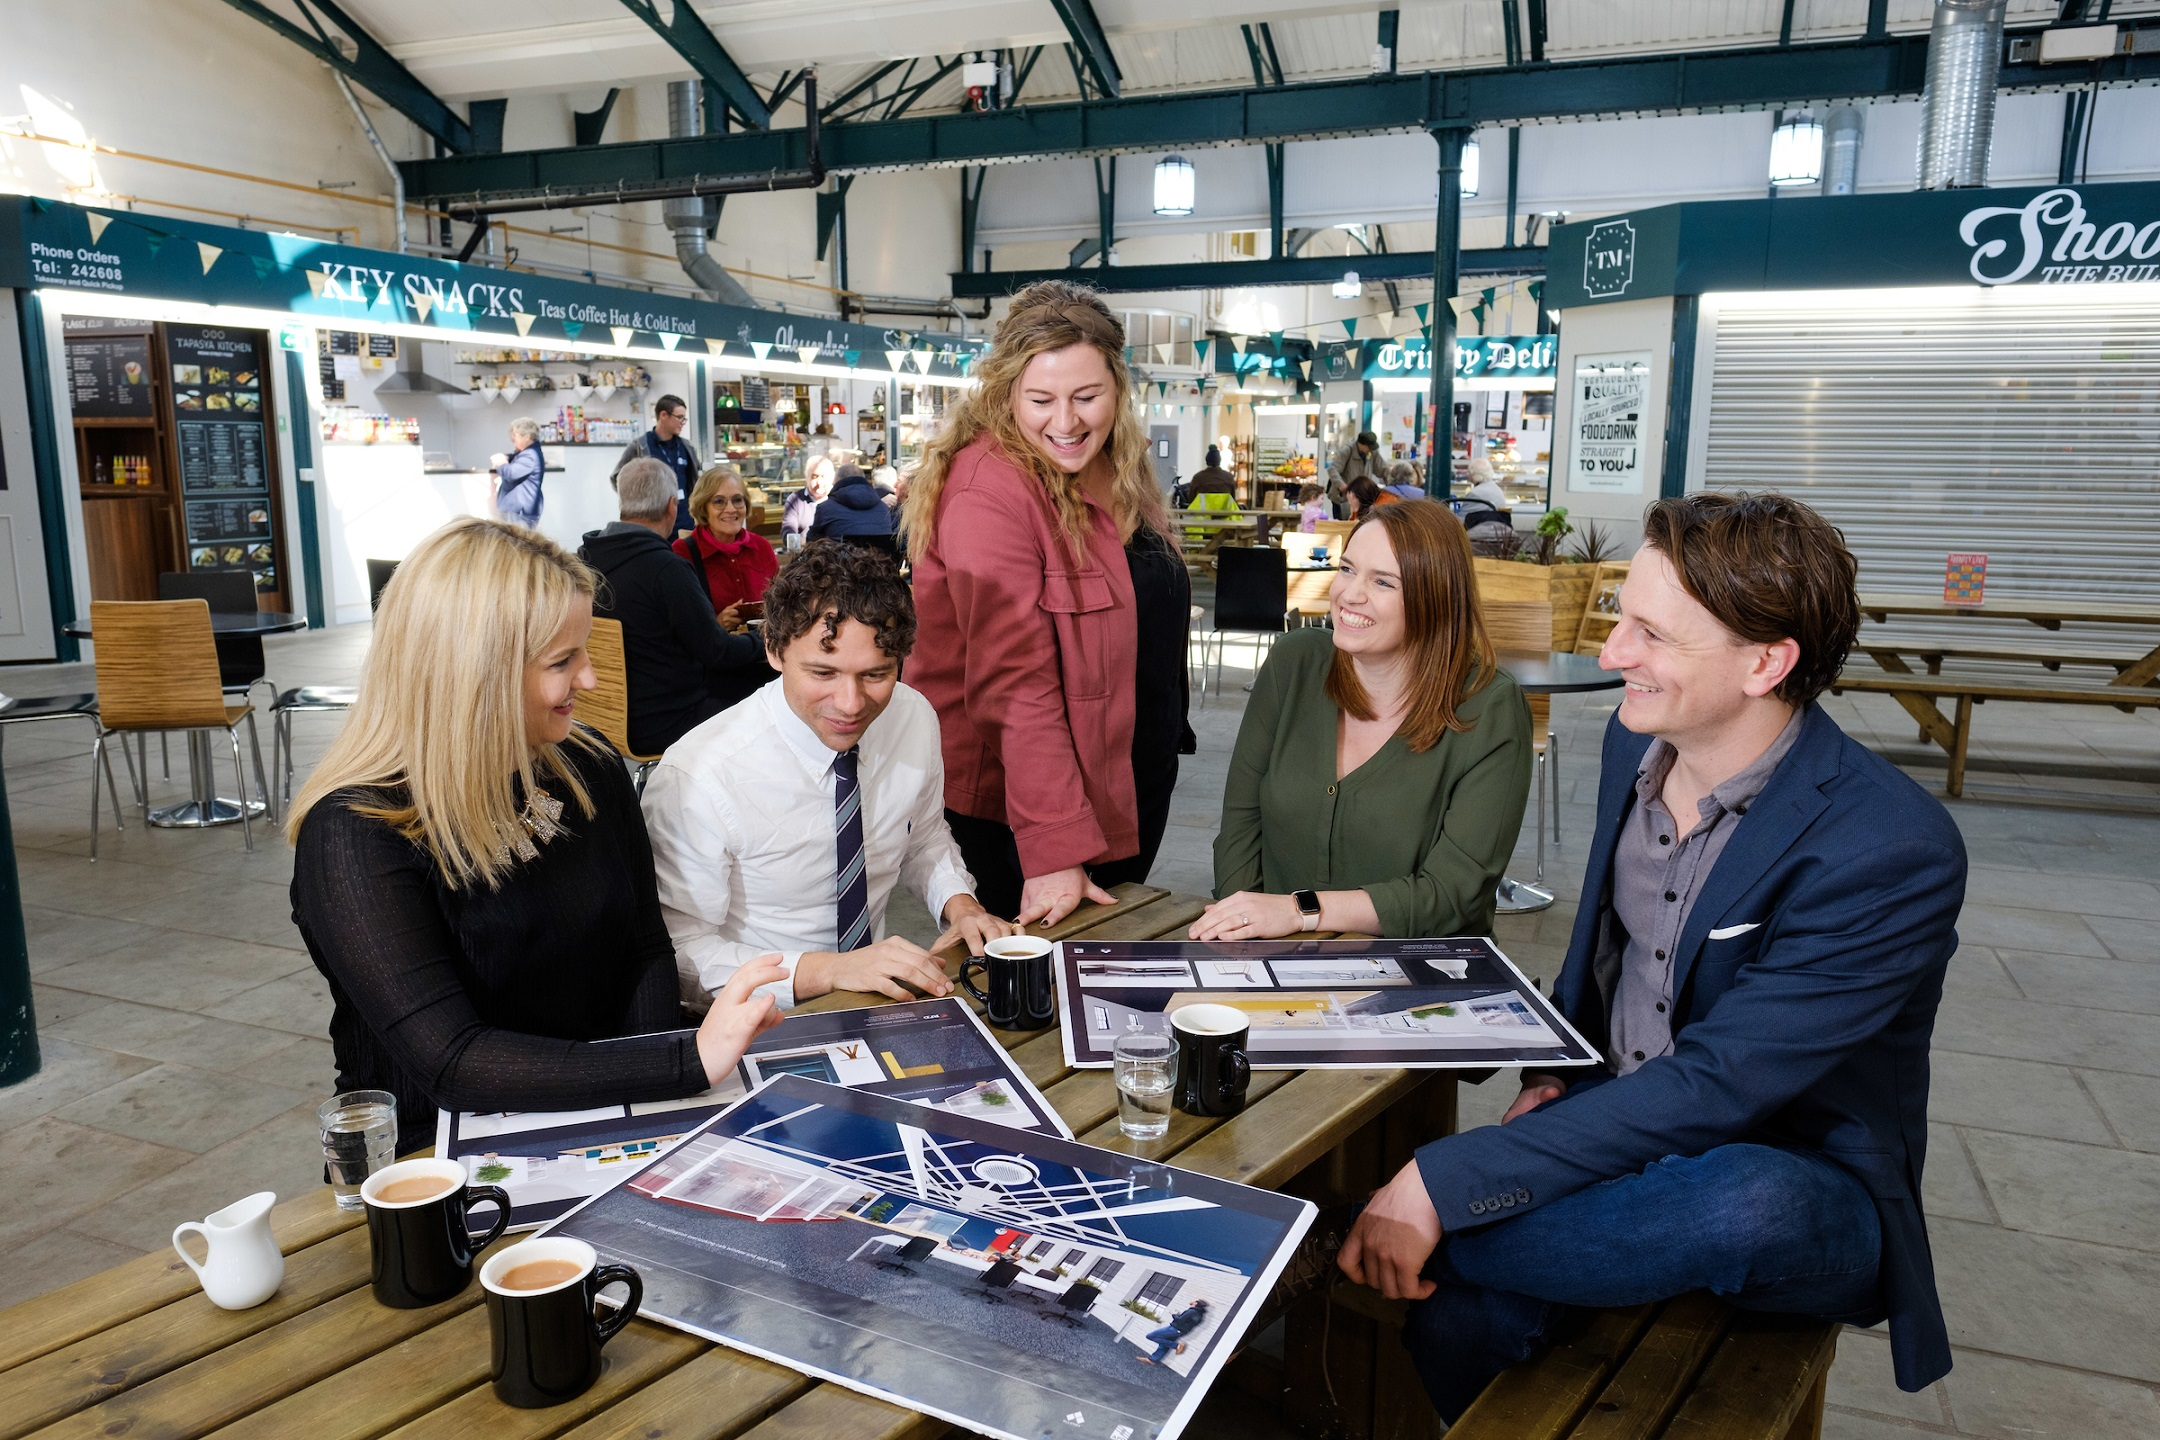 From left, APD's Jane Cross, Alex Jenneson of RFD, Georgia Allenby of Allenby Commercial, APD's Rhiannon Beeson and Allenby Commercial's Charlie Allenby enjoy a relaxing moment in Hull's thriving Trinity Market food hall, which is just yards from APD's new offices.